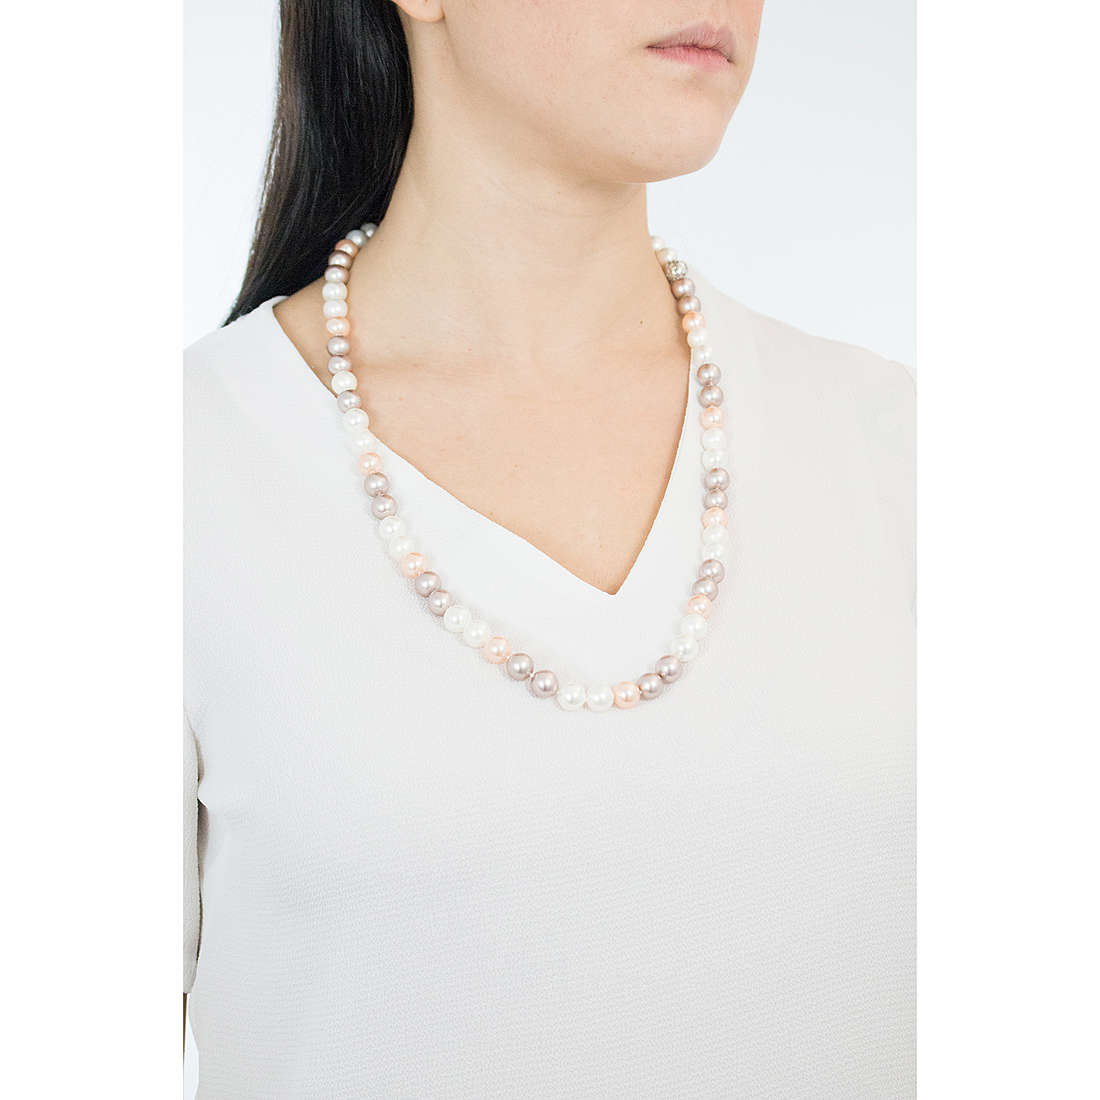 Comete necklaces Astri woman FWQ 174 photo wearing